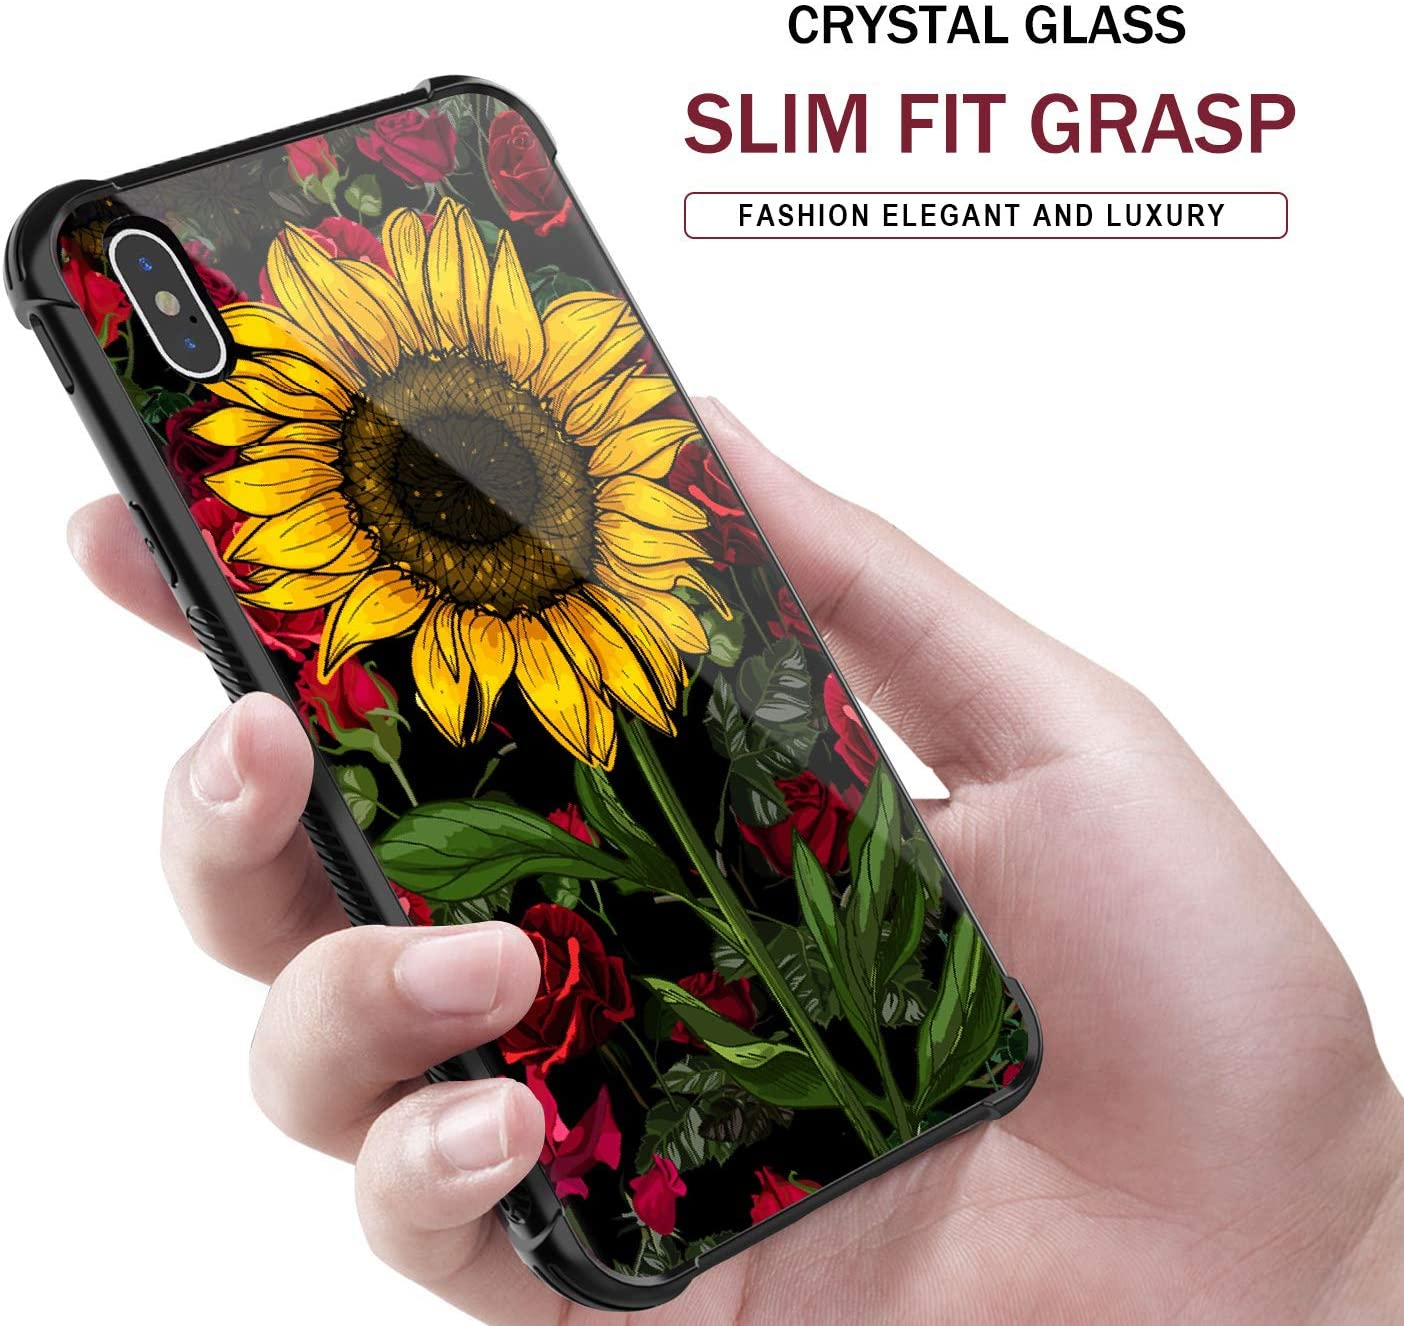 iPhone X/XS Case,Sunflower Rose Pattern Tempered Glass iPhone X/XS Cases for Girls [Anti-Scratch] [Anti Fall] Elegant and Luxury Design Cover Case for iPhone X/XS(5.8inch)